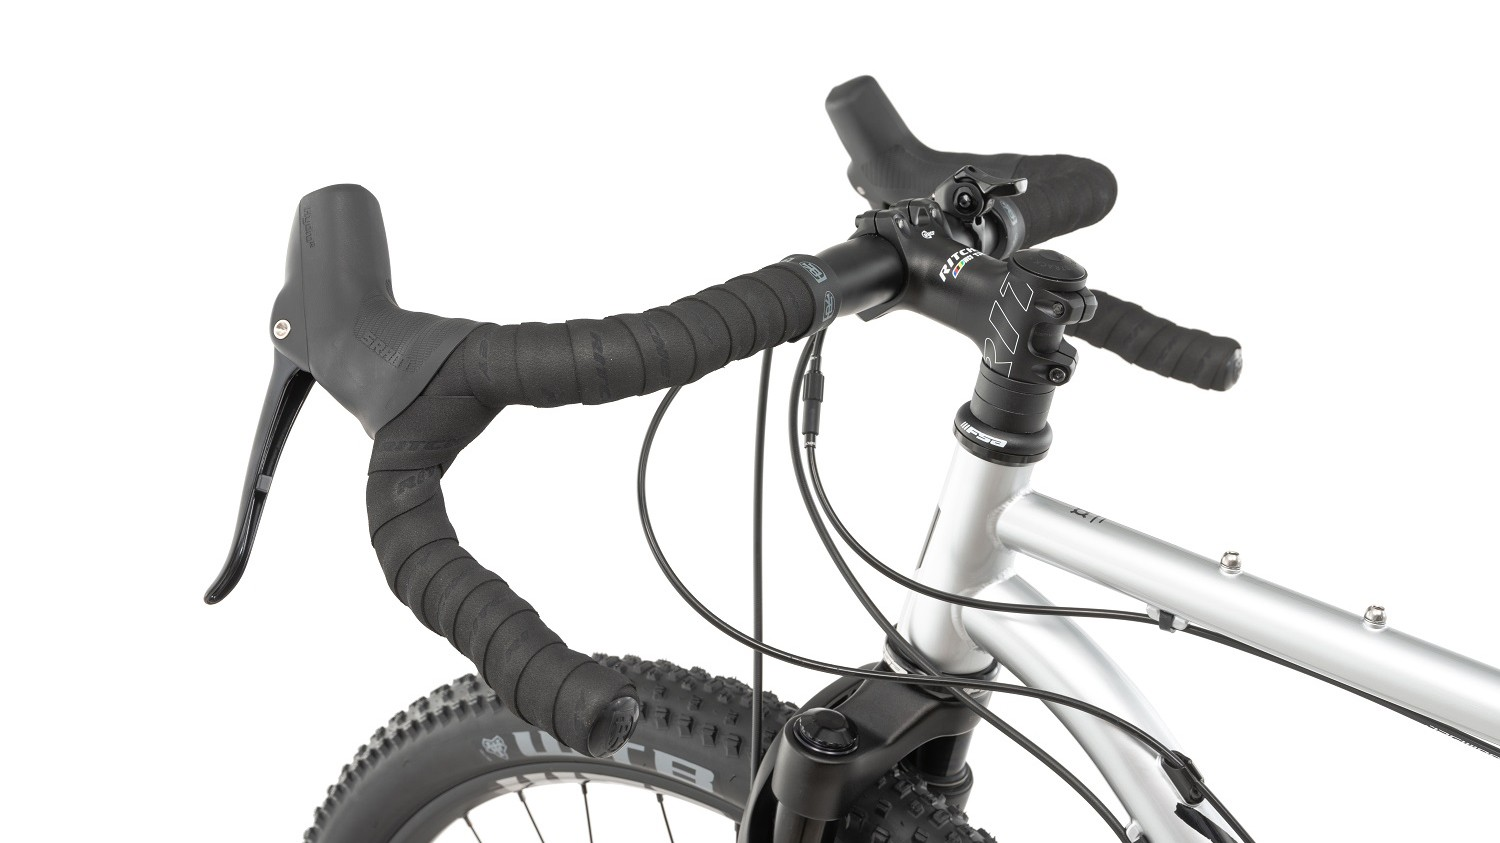 The dropper lever is attached to the clamping area of the bars